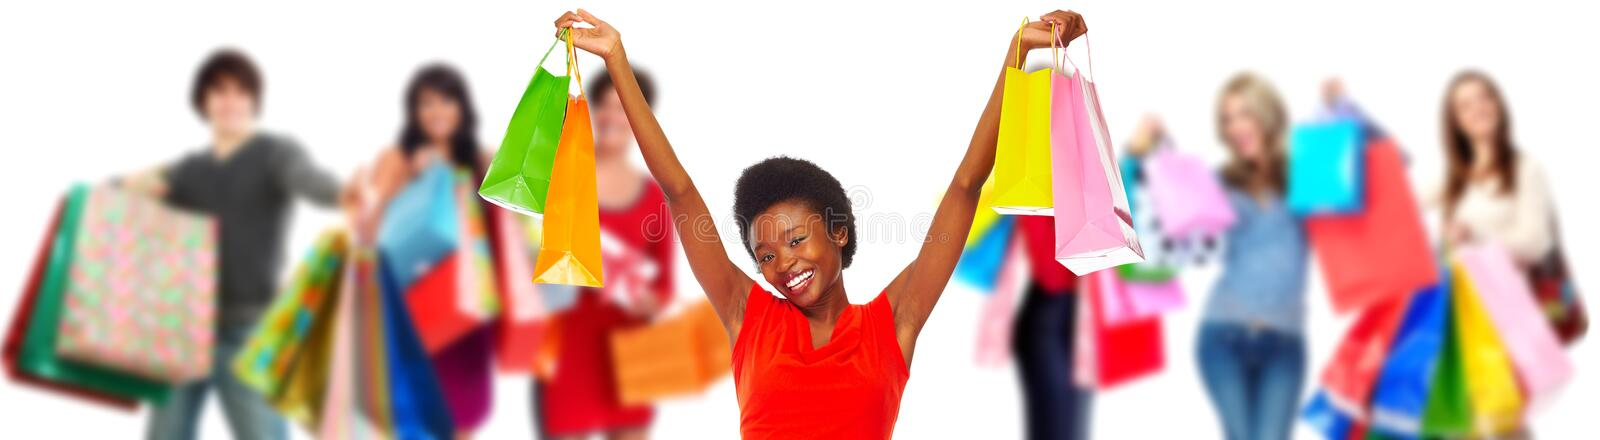 Group of happy shopping customers. royalty free stock images